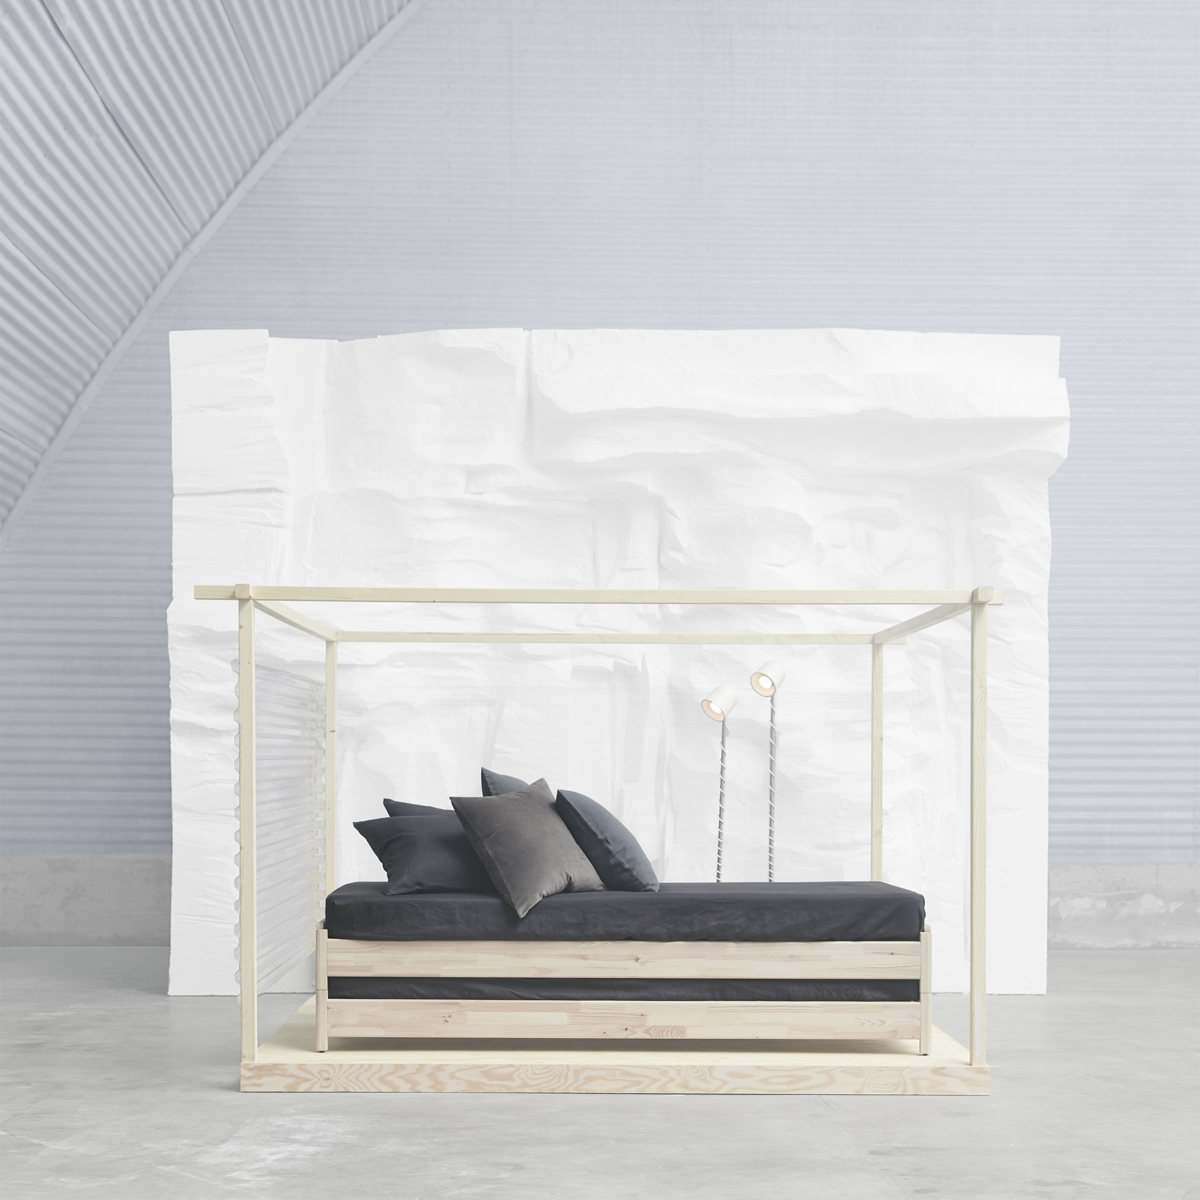 affordable meet the versatile ikea utker stackable bed made of untreated solid pine that. Black Bedroom Furniture Sets. Home Design Ideas